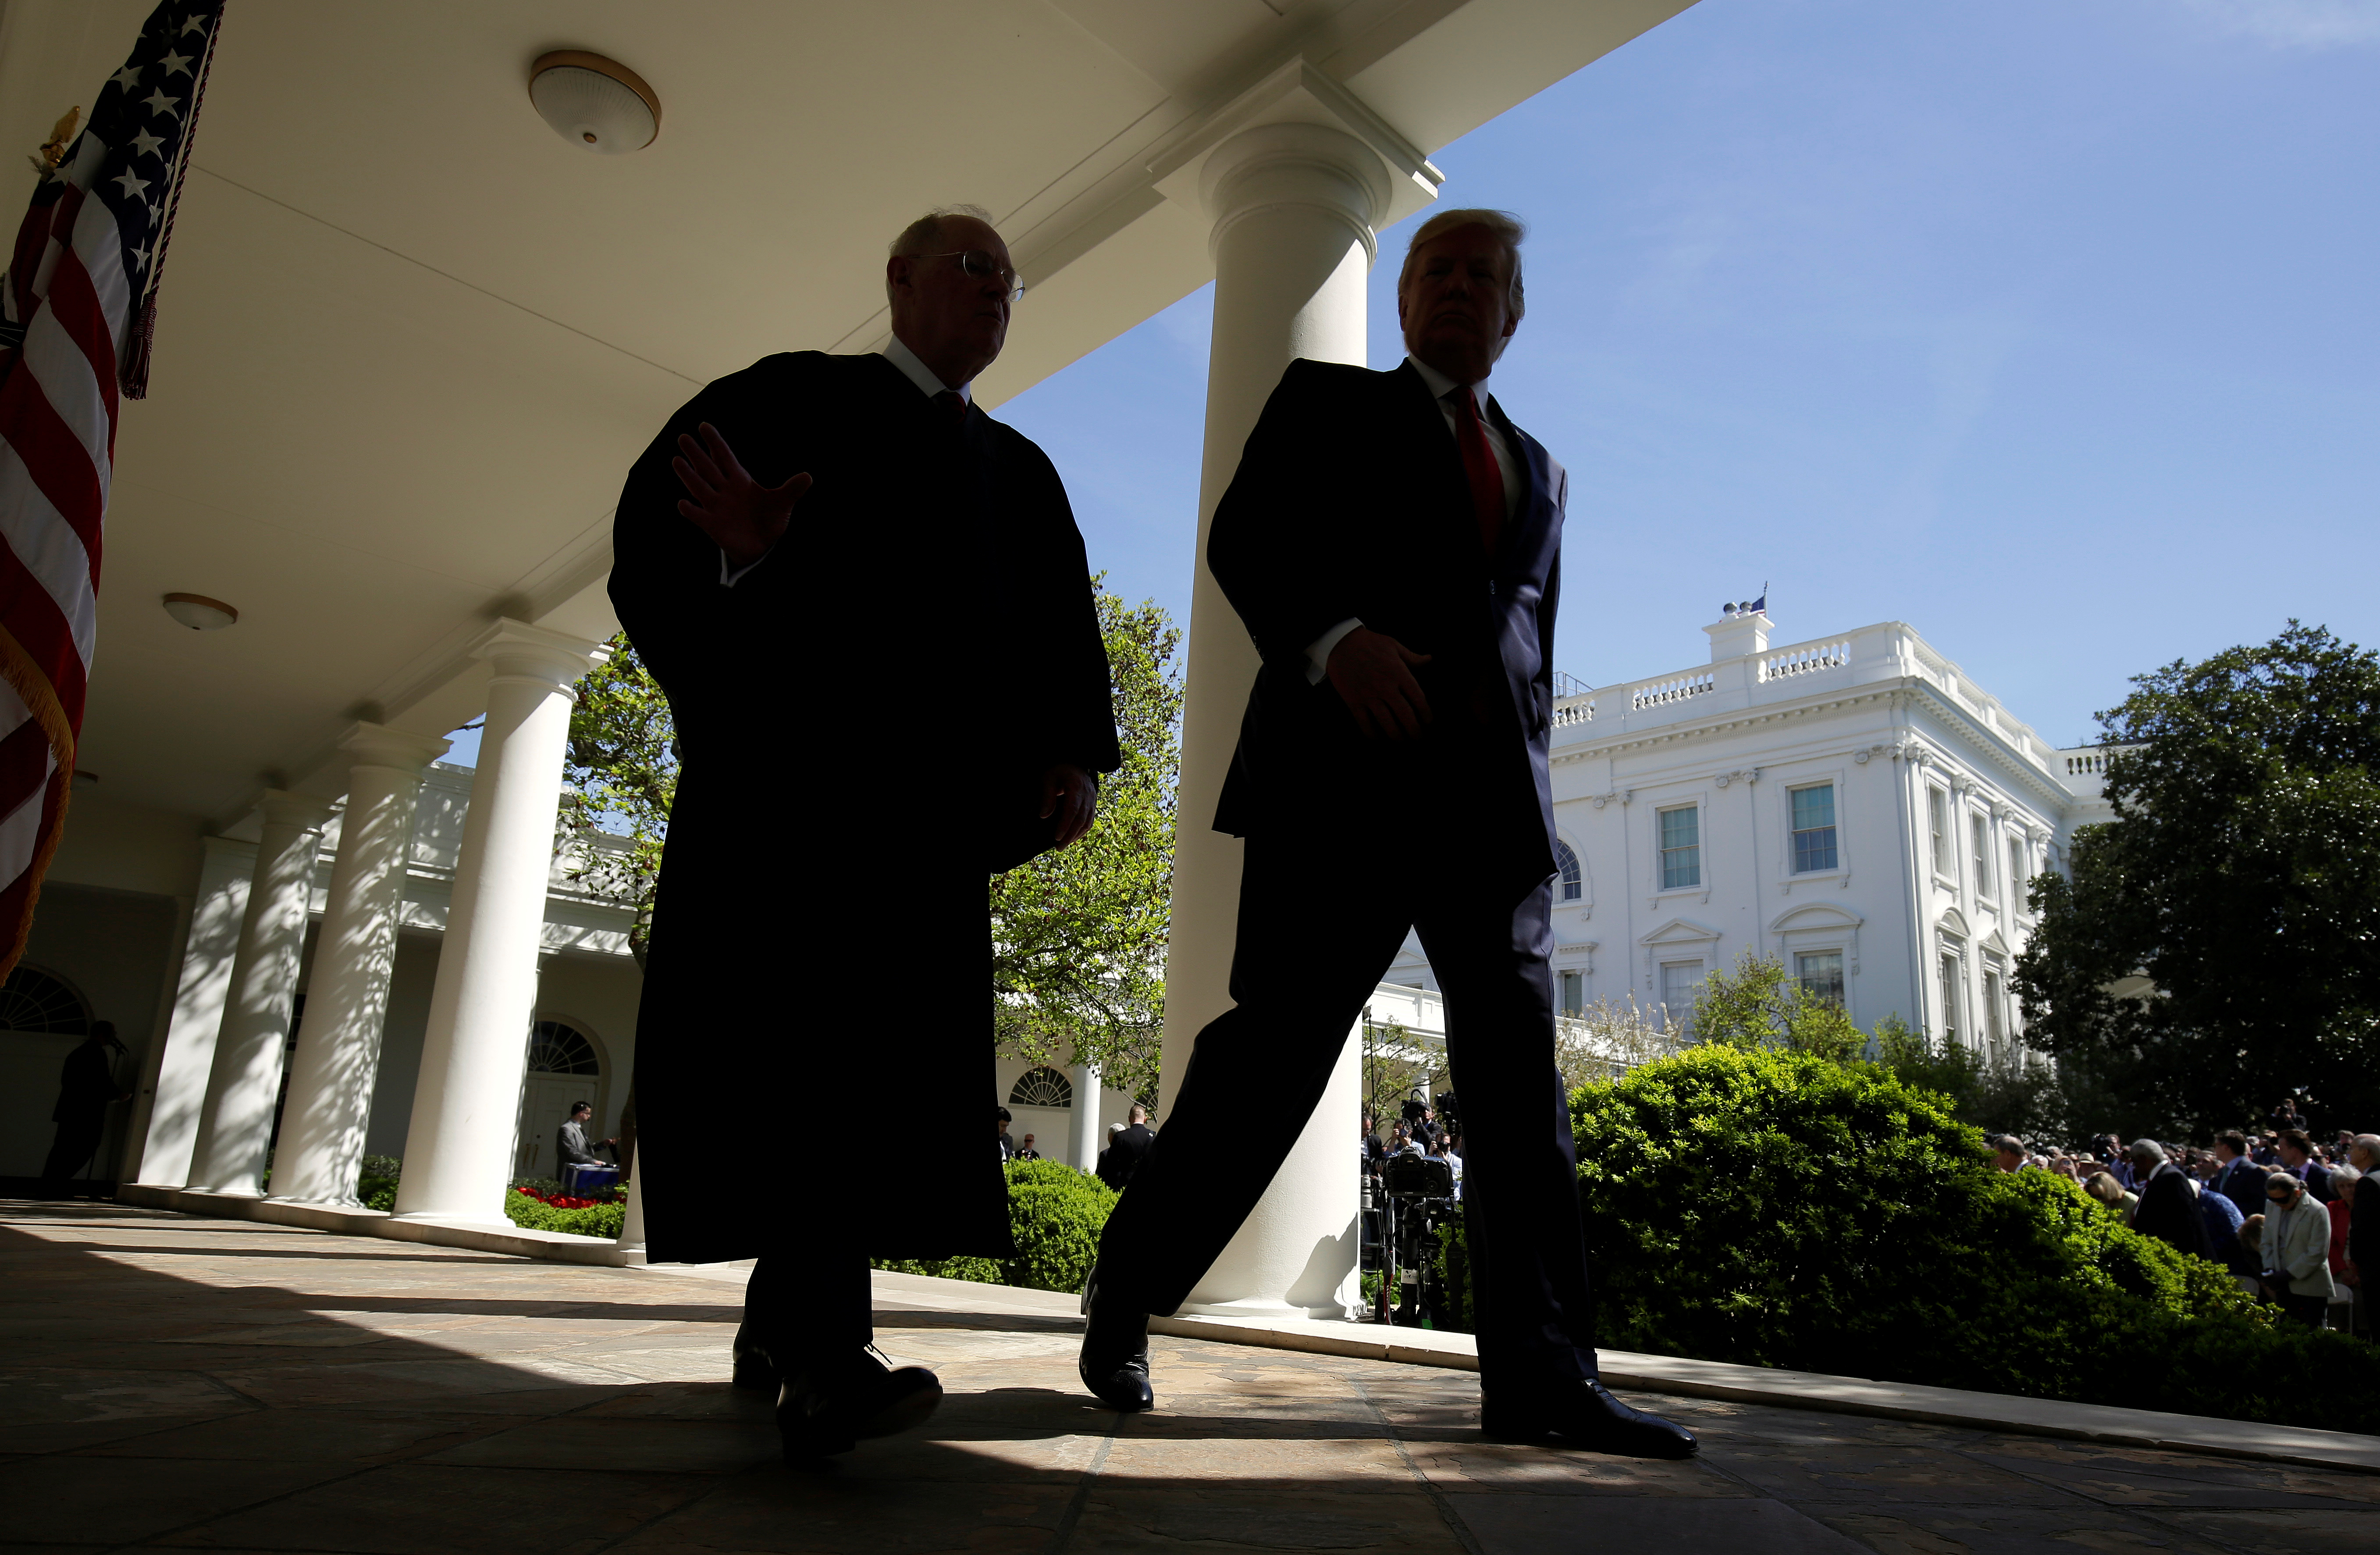 U.S. President Donald Trump walks with Justice Anthony Kennedy after Judge Neil Gorsuch was sworn in as an Associate Supreme Court Justice in the Rose Garden of the White House in Washington, April 10, 2017.